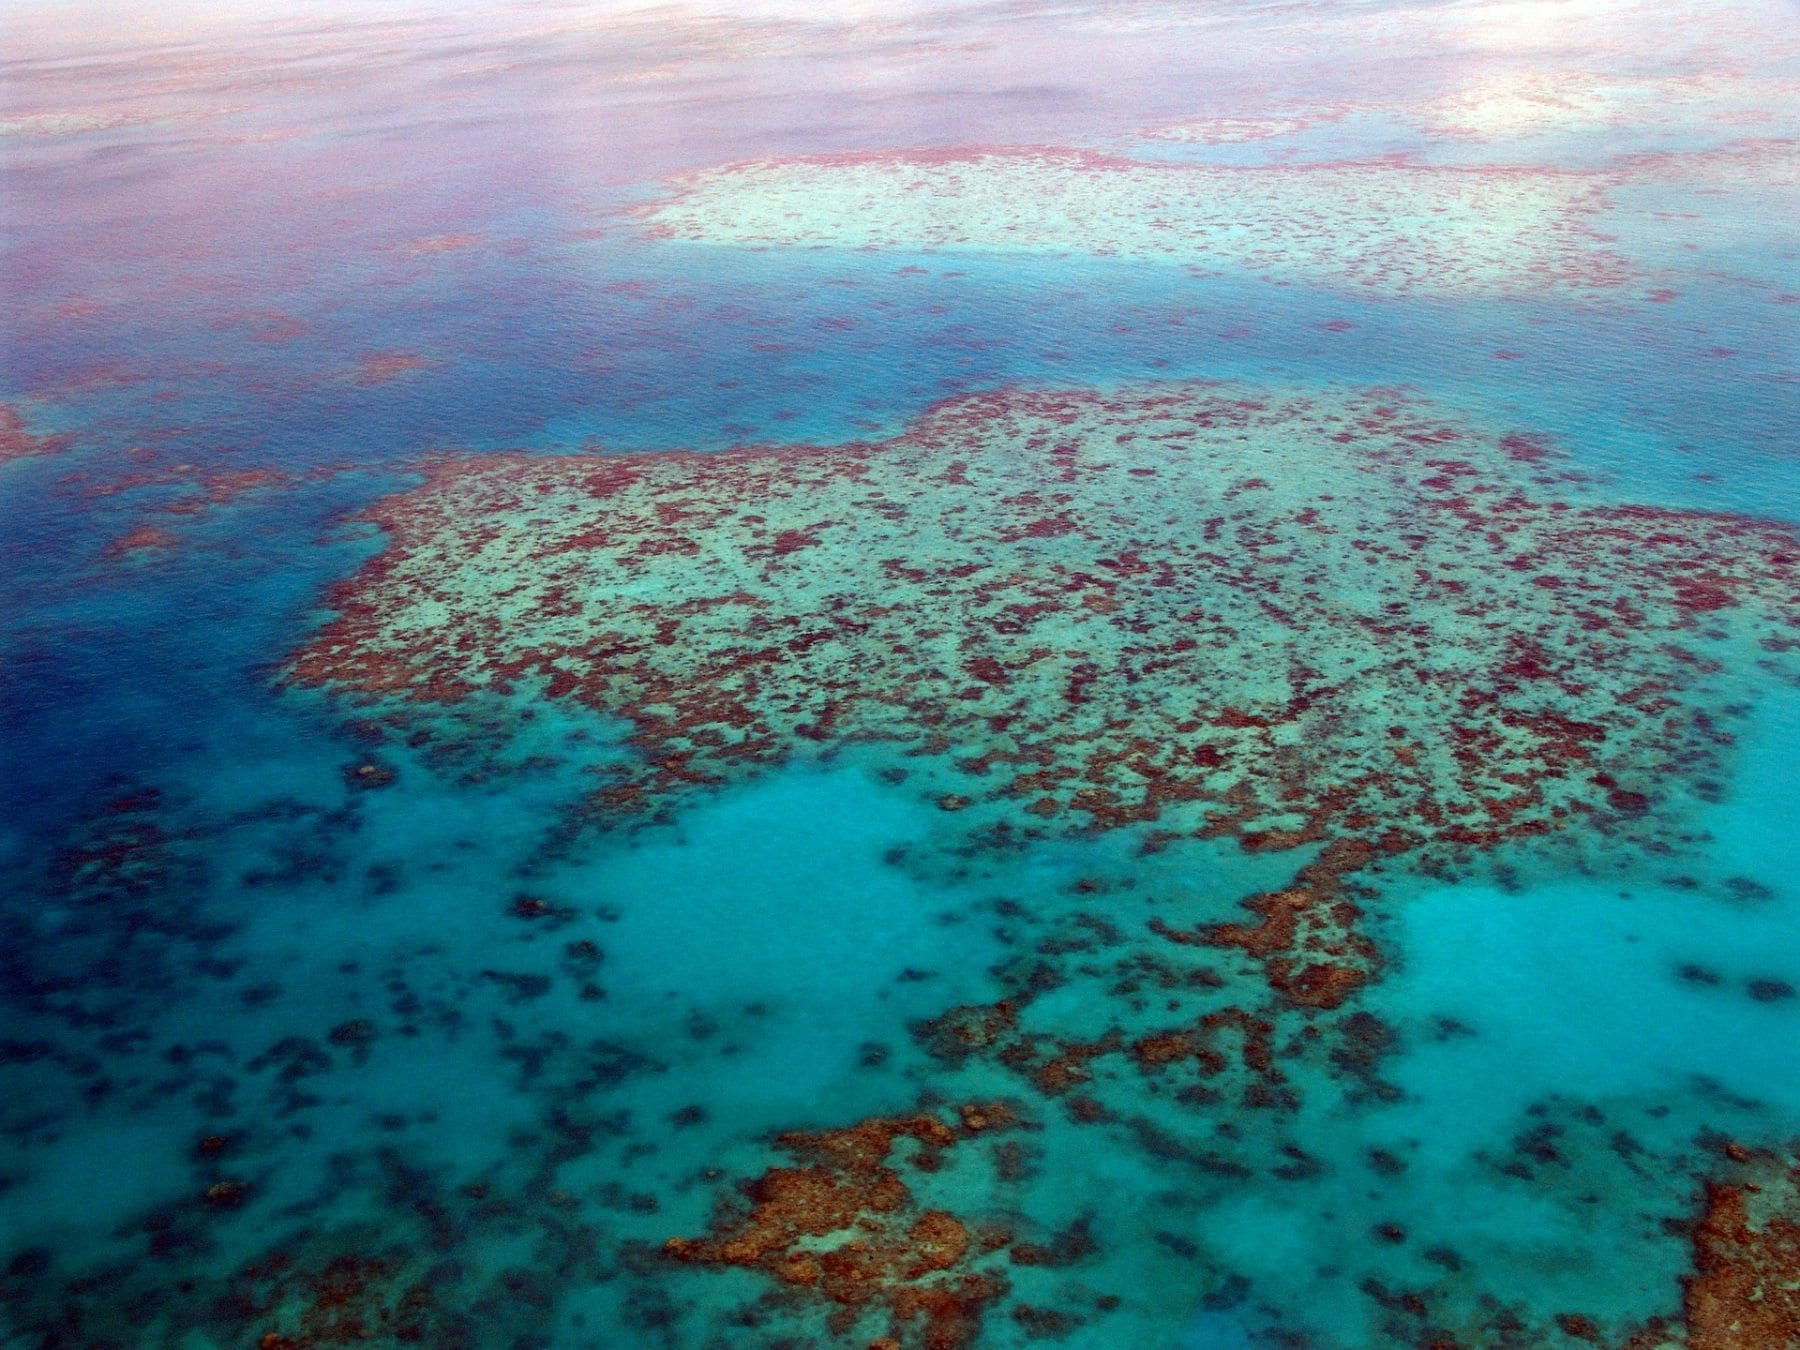 How much do you know about the Great Barrier Reef?